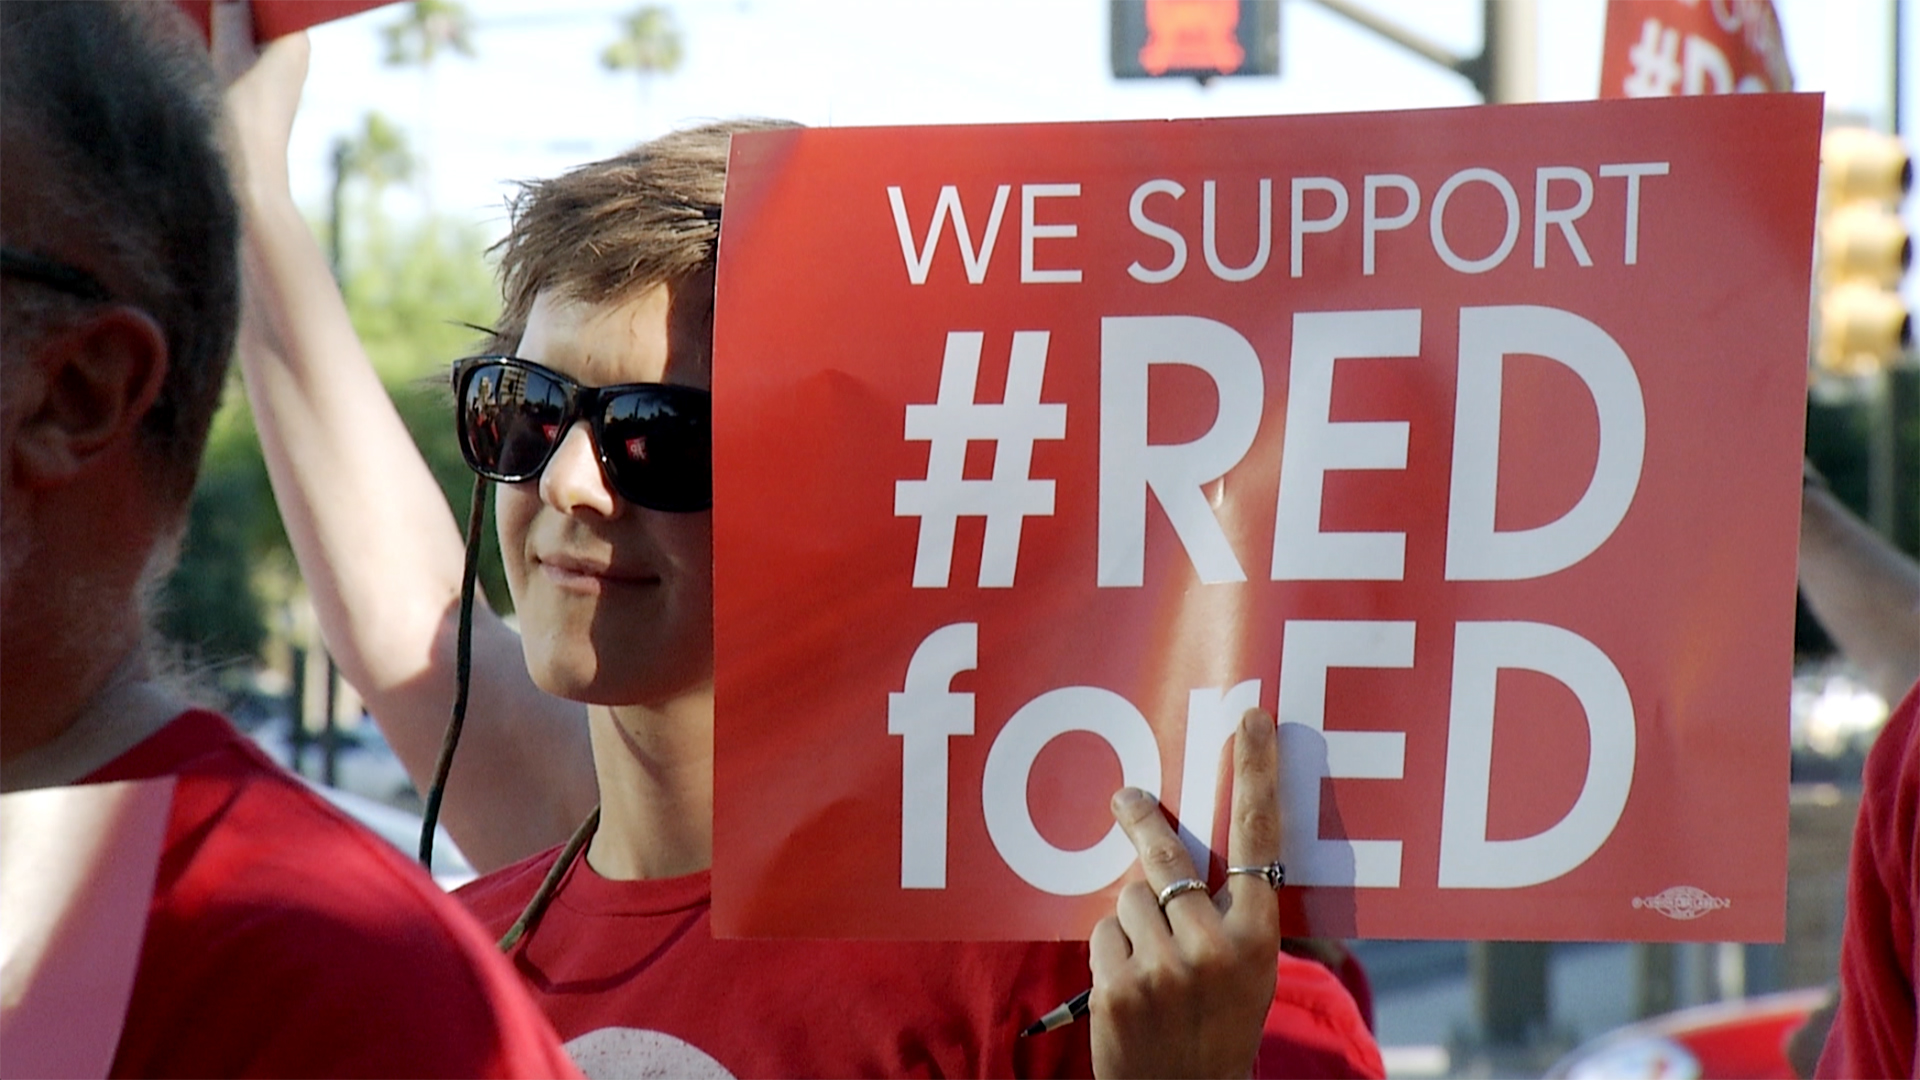 #RedForEd protester stands in the midst of a crowd, April 2019.